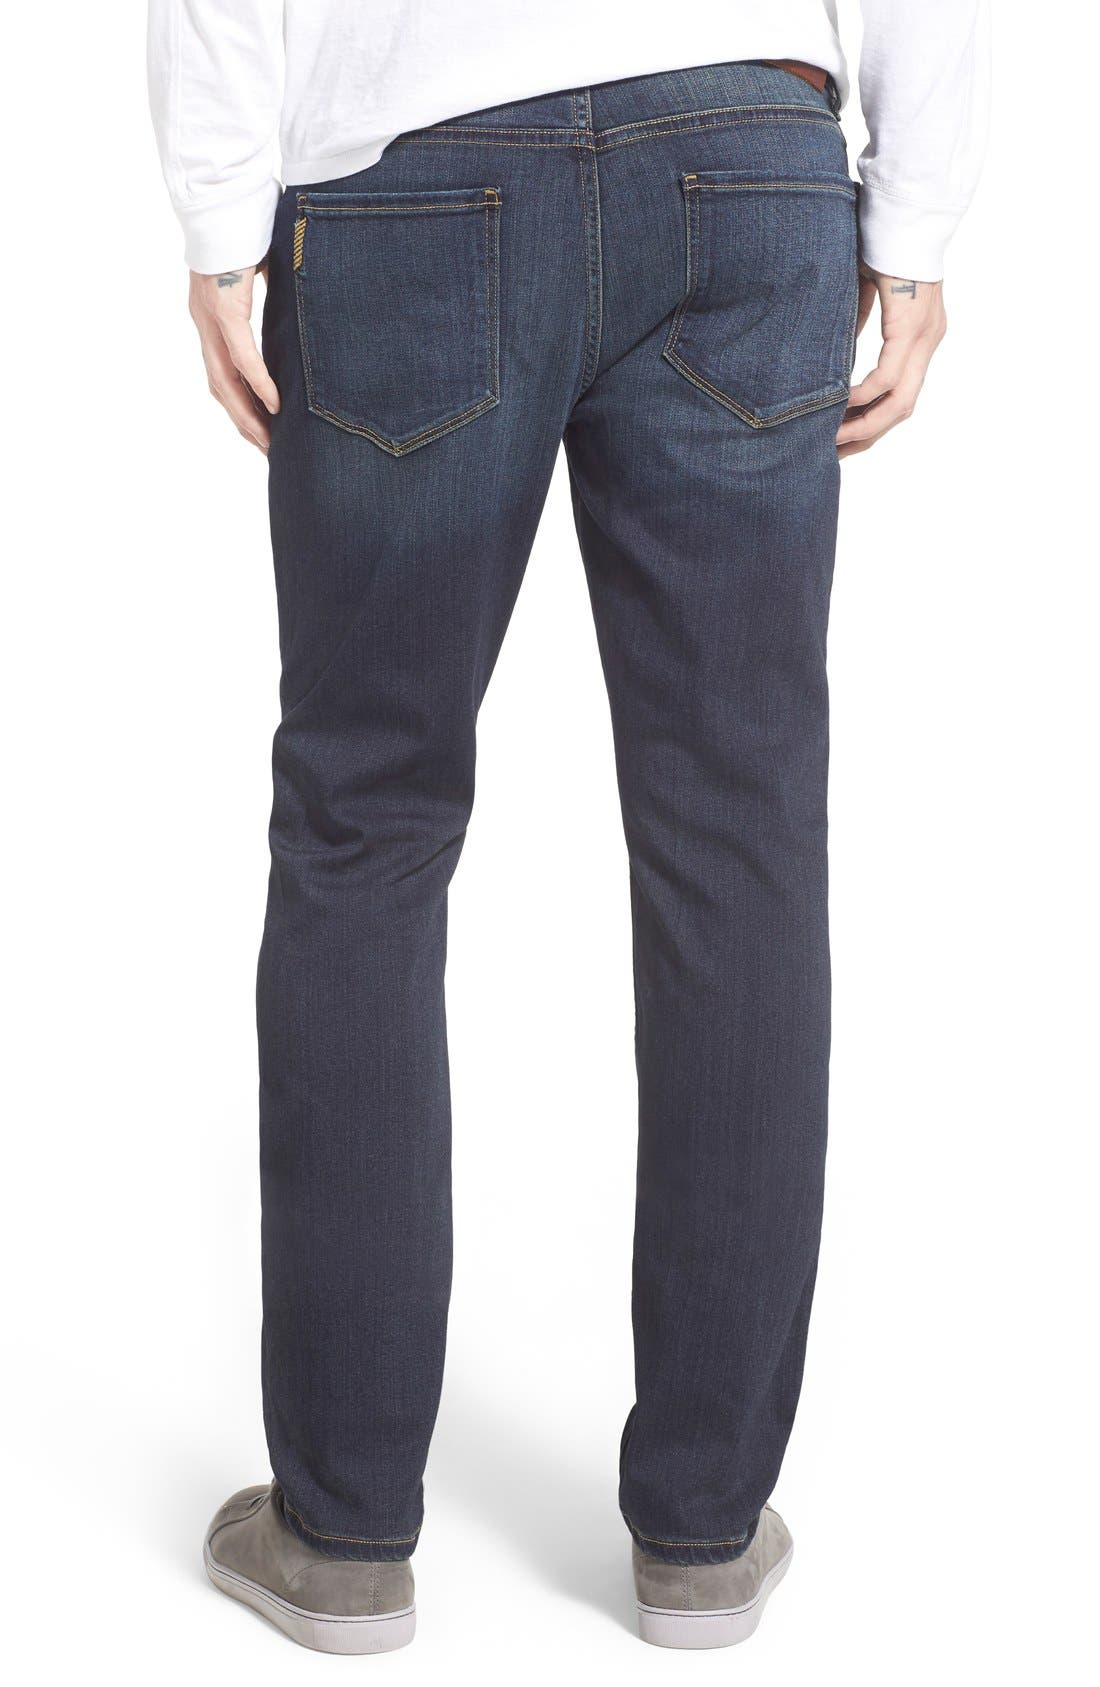 Lennox Slim Fit Jeans,                             Alternate thumbnail 2, color,                             Rigby